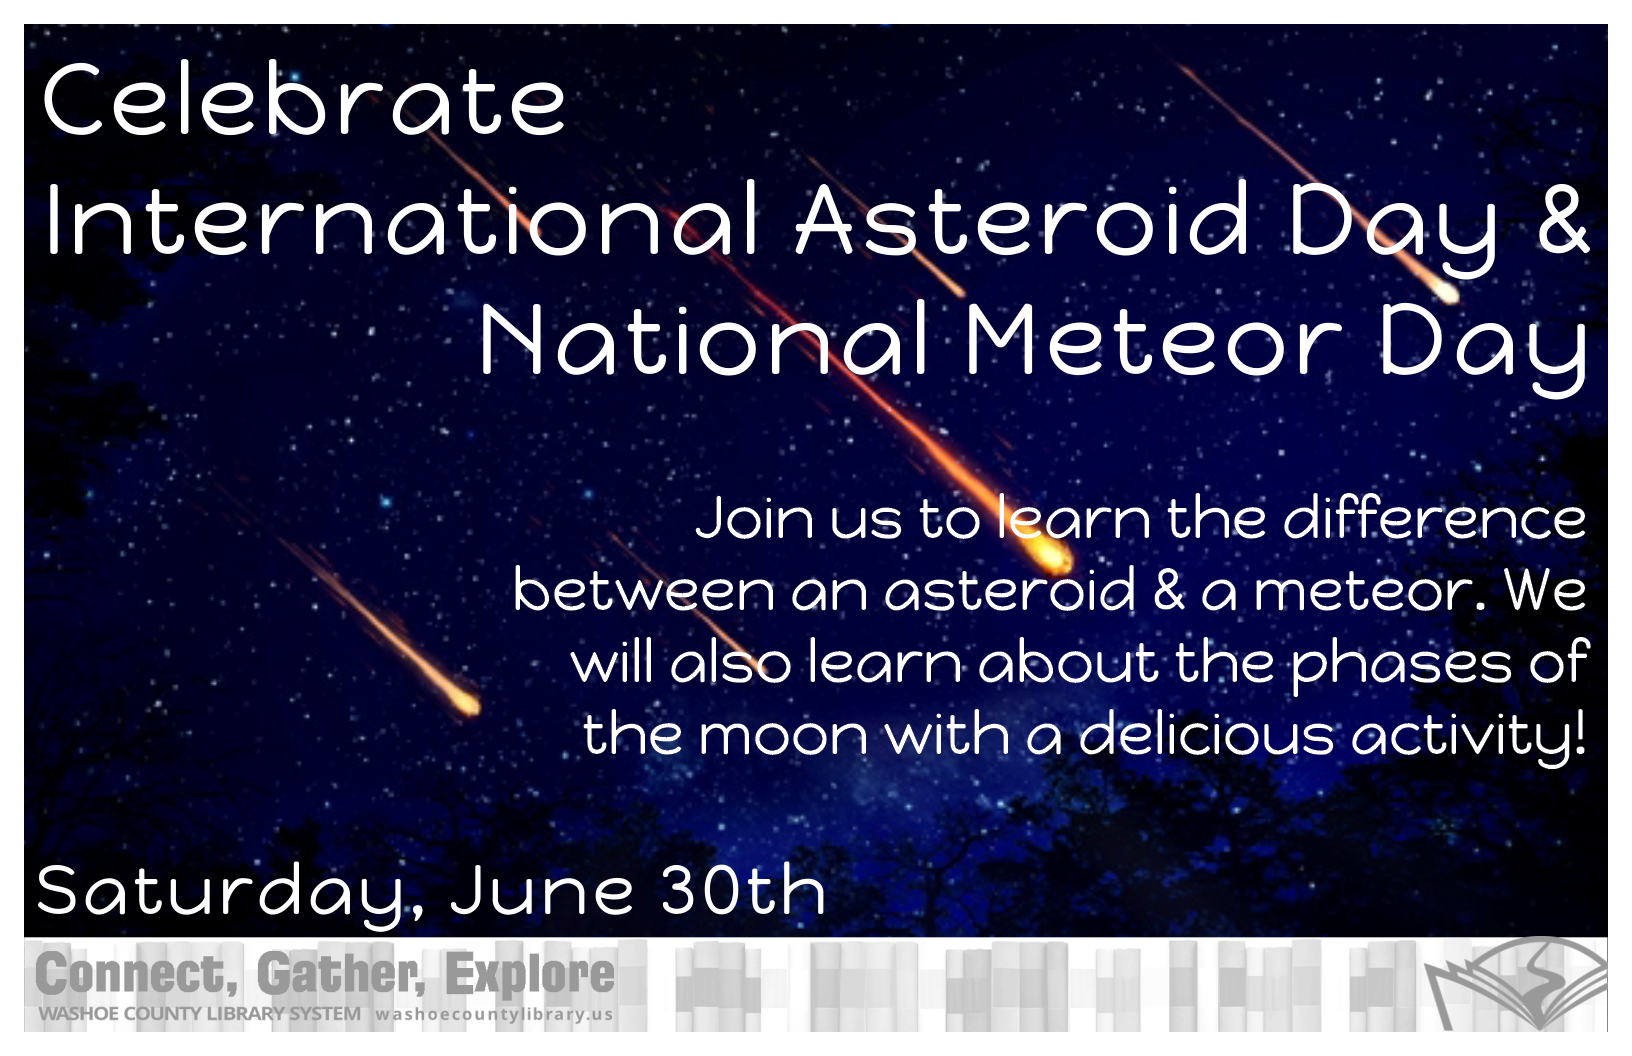 In Celebration of International Asteroid Day & National Meteor Watch Day